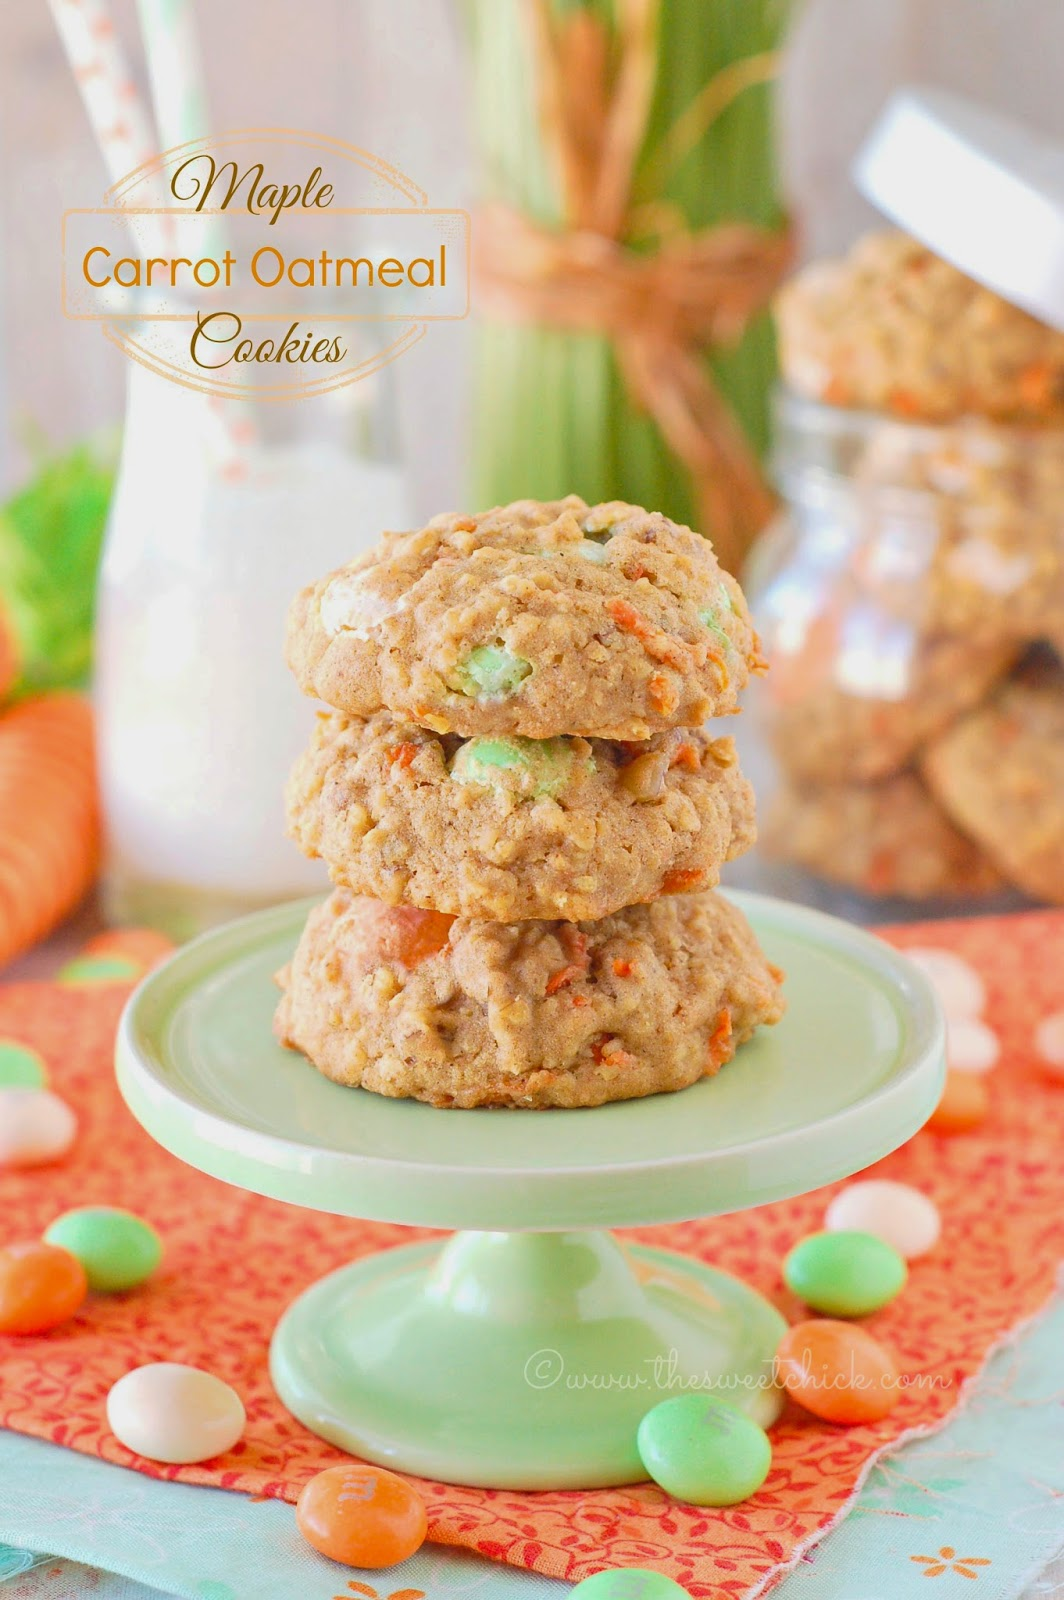 Maple Carrot Oatmeal Cookies by The Sweet Chick